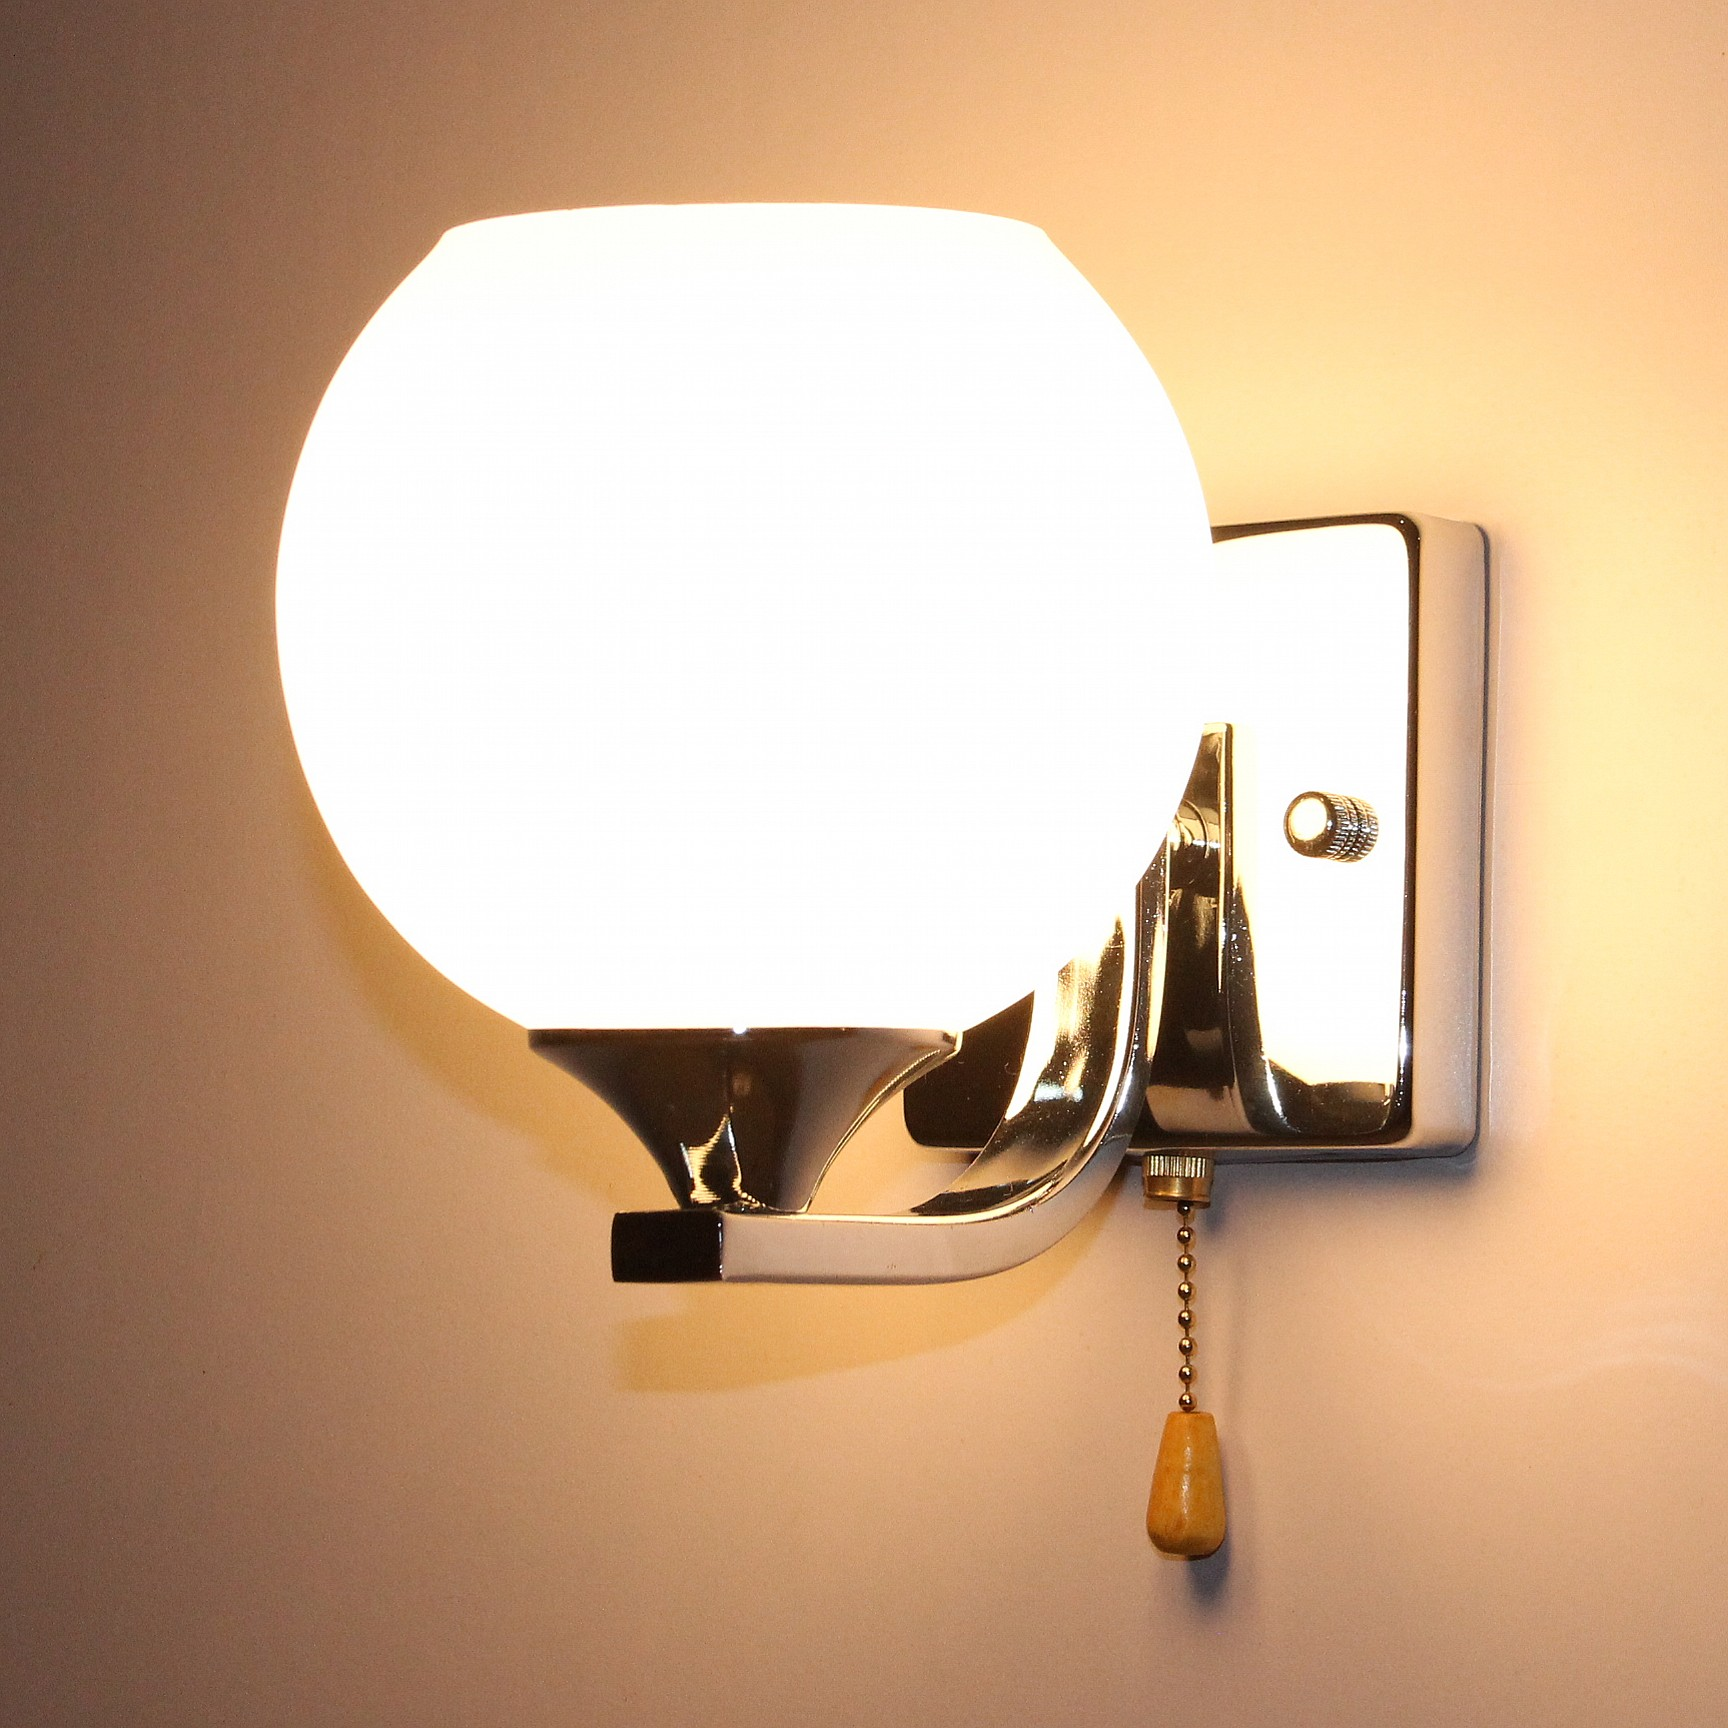 Wall lamp bed-lighting modern brief led wall lights stair belt dimmer switches double slider